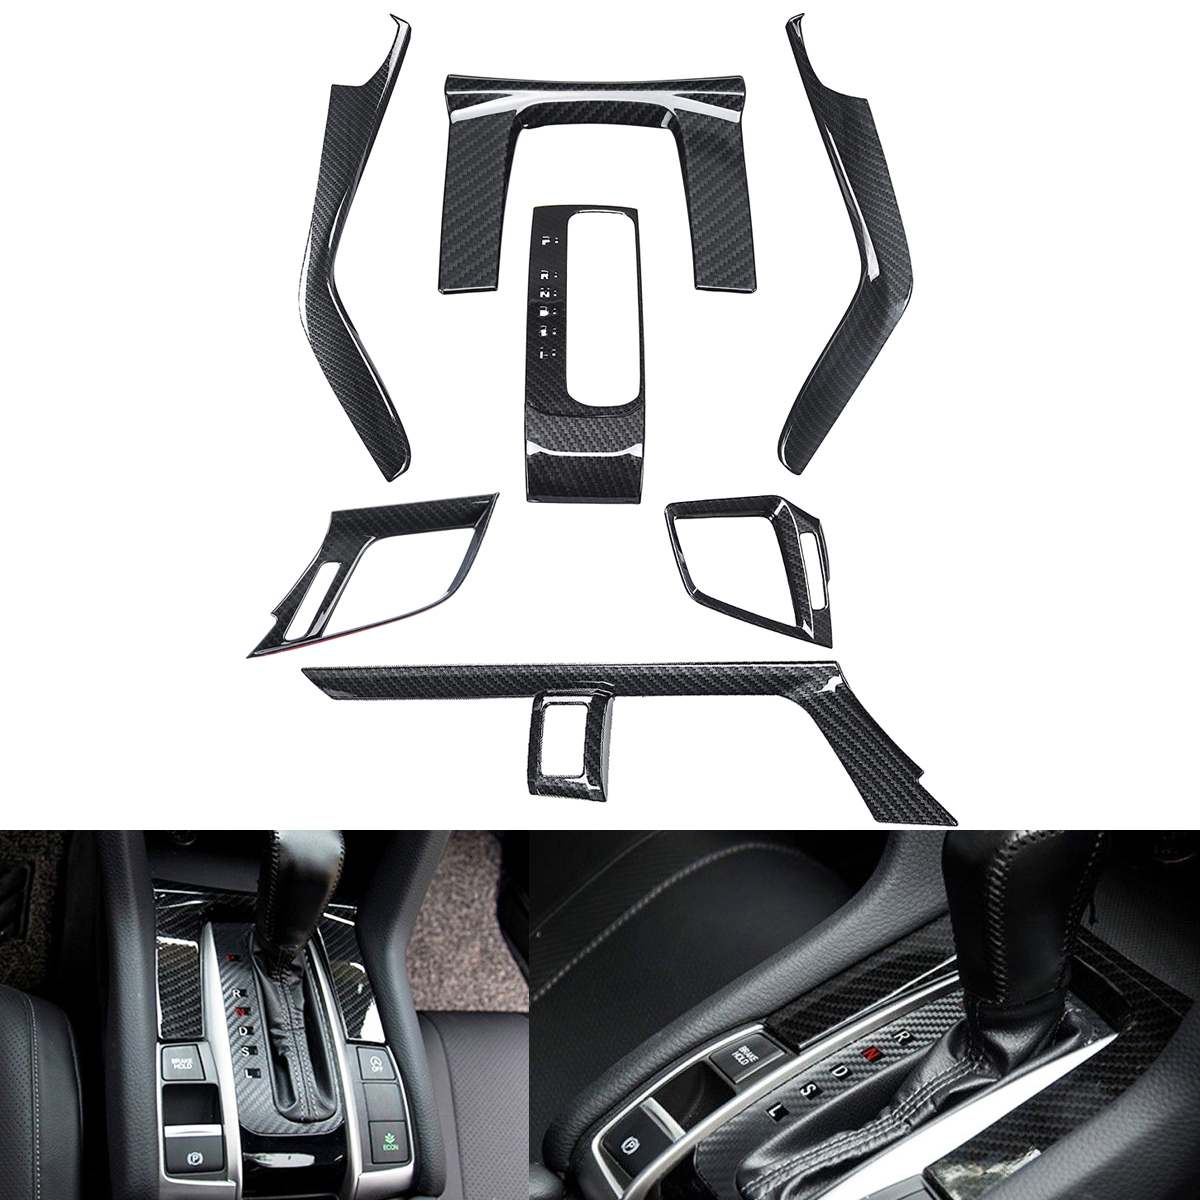 7pcs/set Carbon Fiber Gear Box Panel Cover Dashboard Panel Gear Side Moulding Cover Trim for Honda for Civic 10th 2016 2017